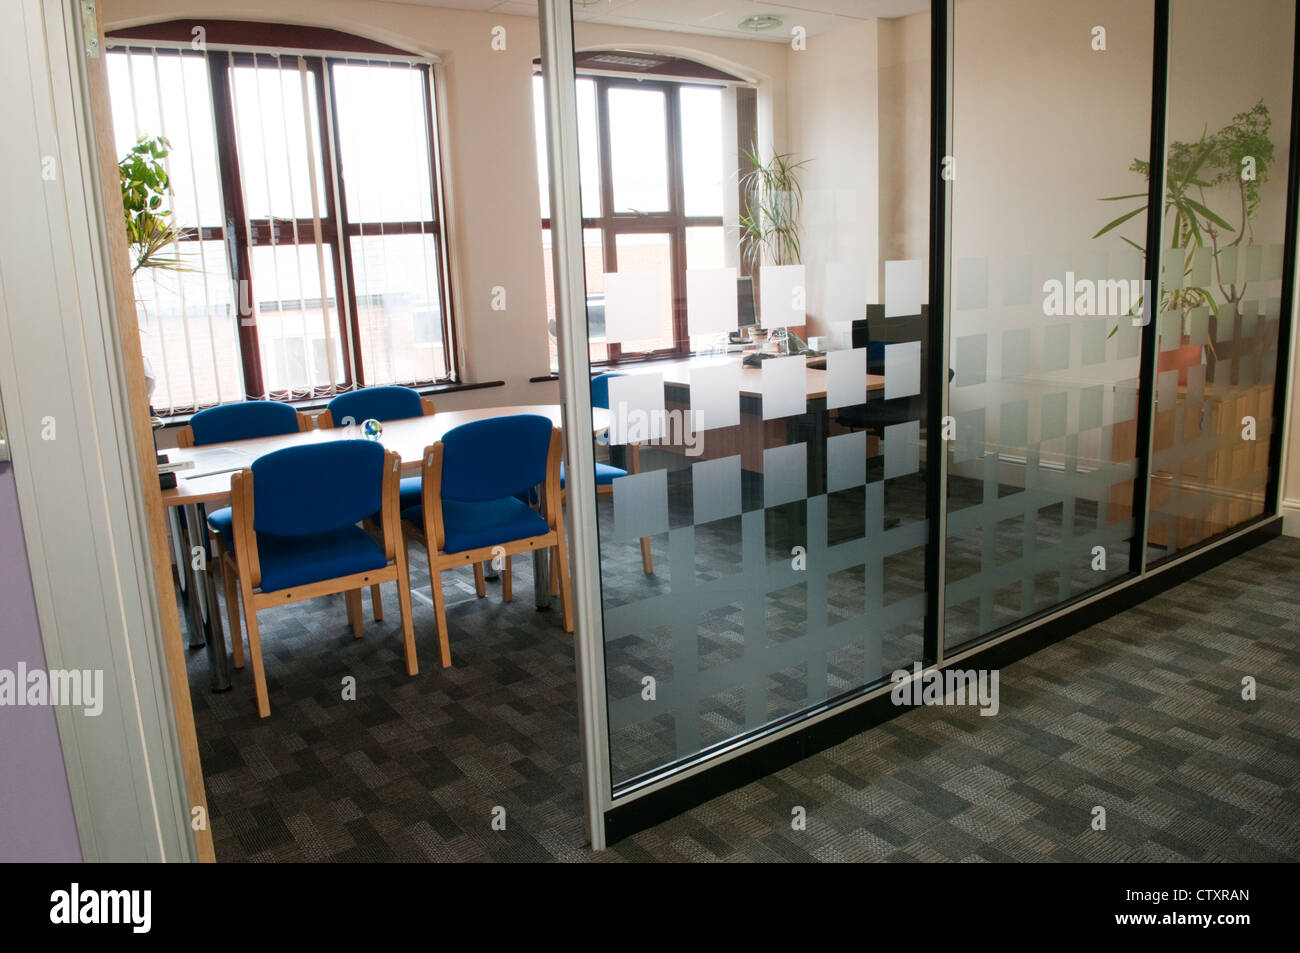 human resources door stockfotos human resources door bilder alamy. Black Bedroom Furniture Sets. Home Design Ideas